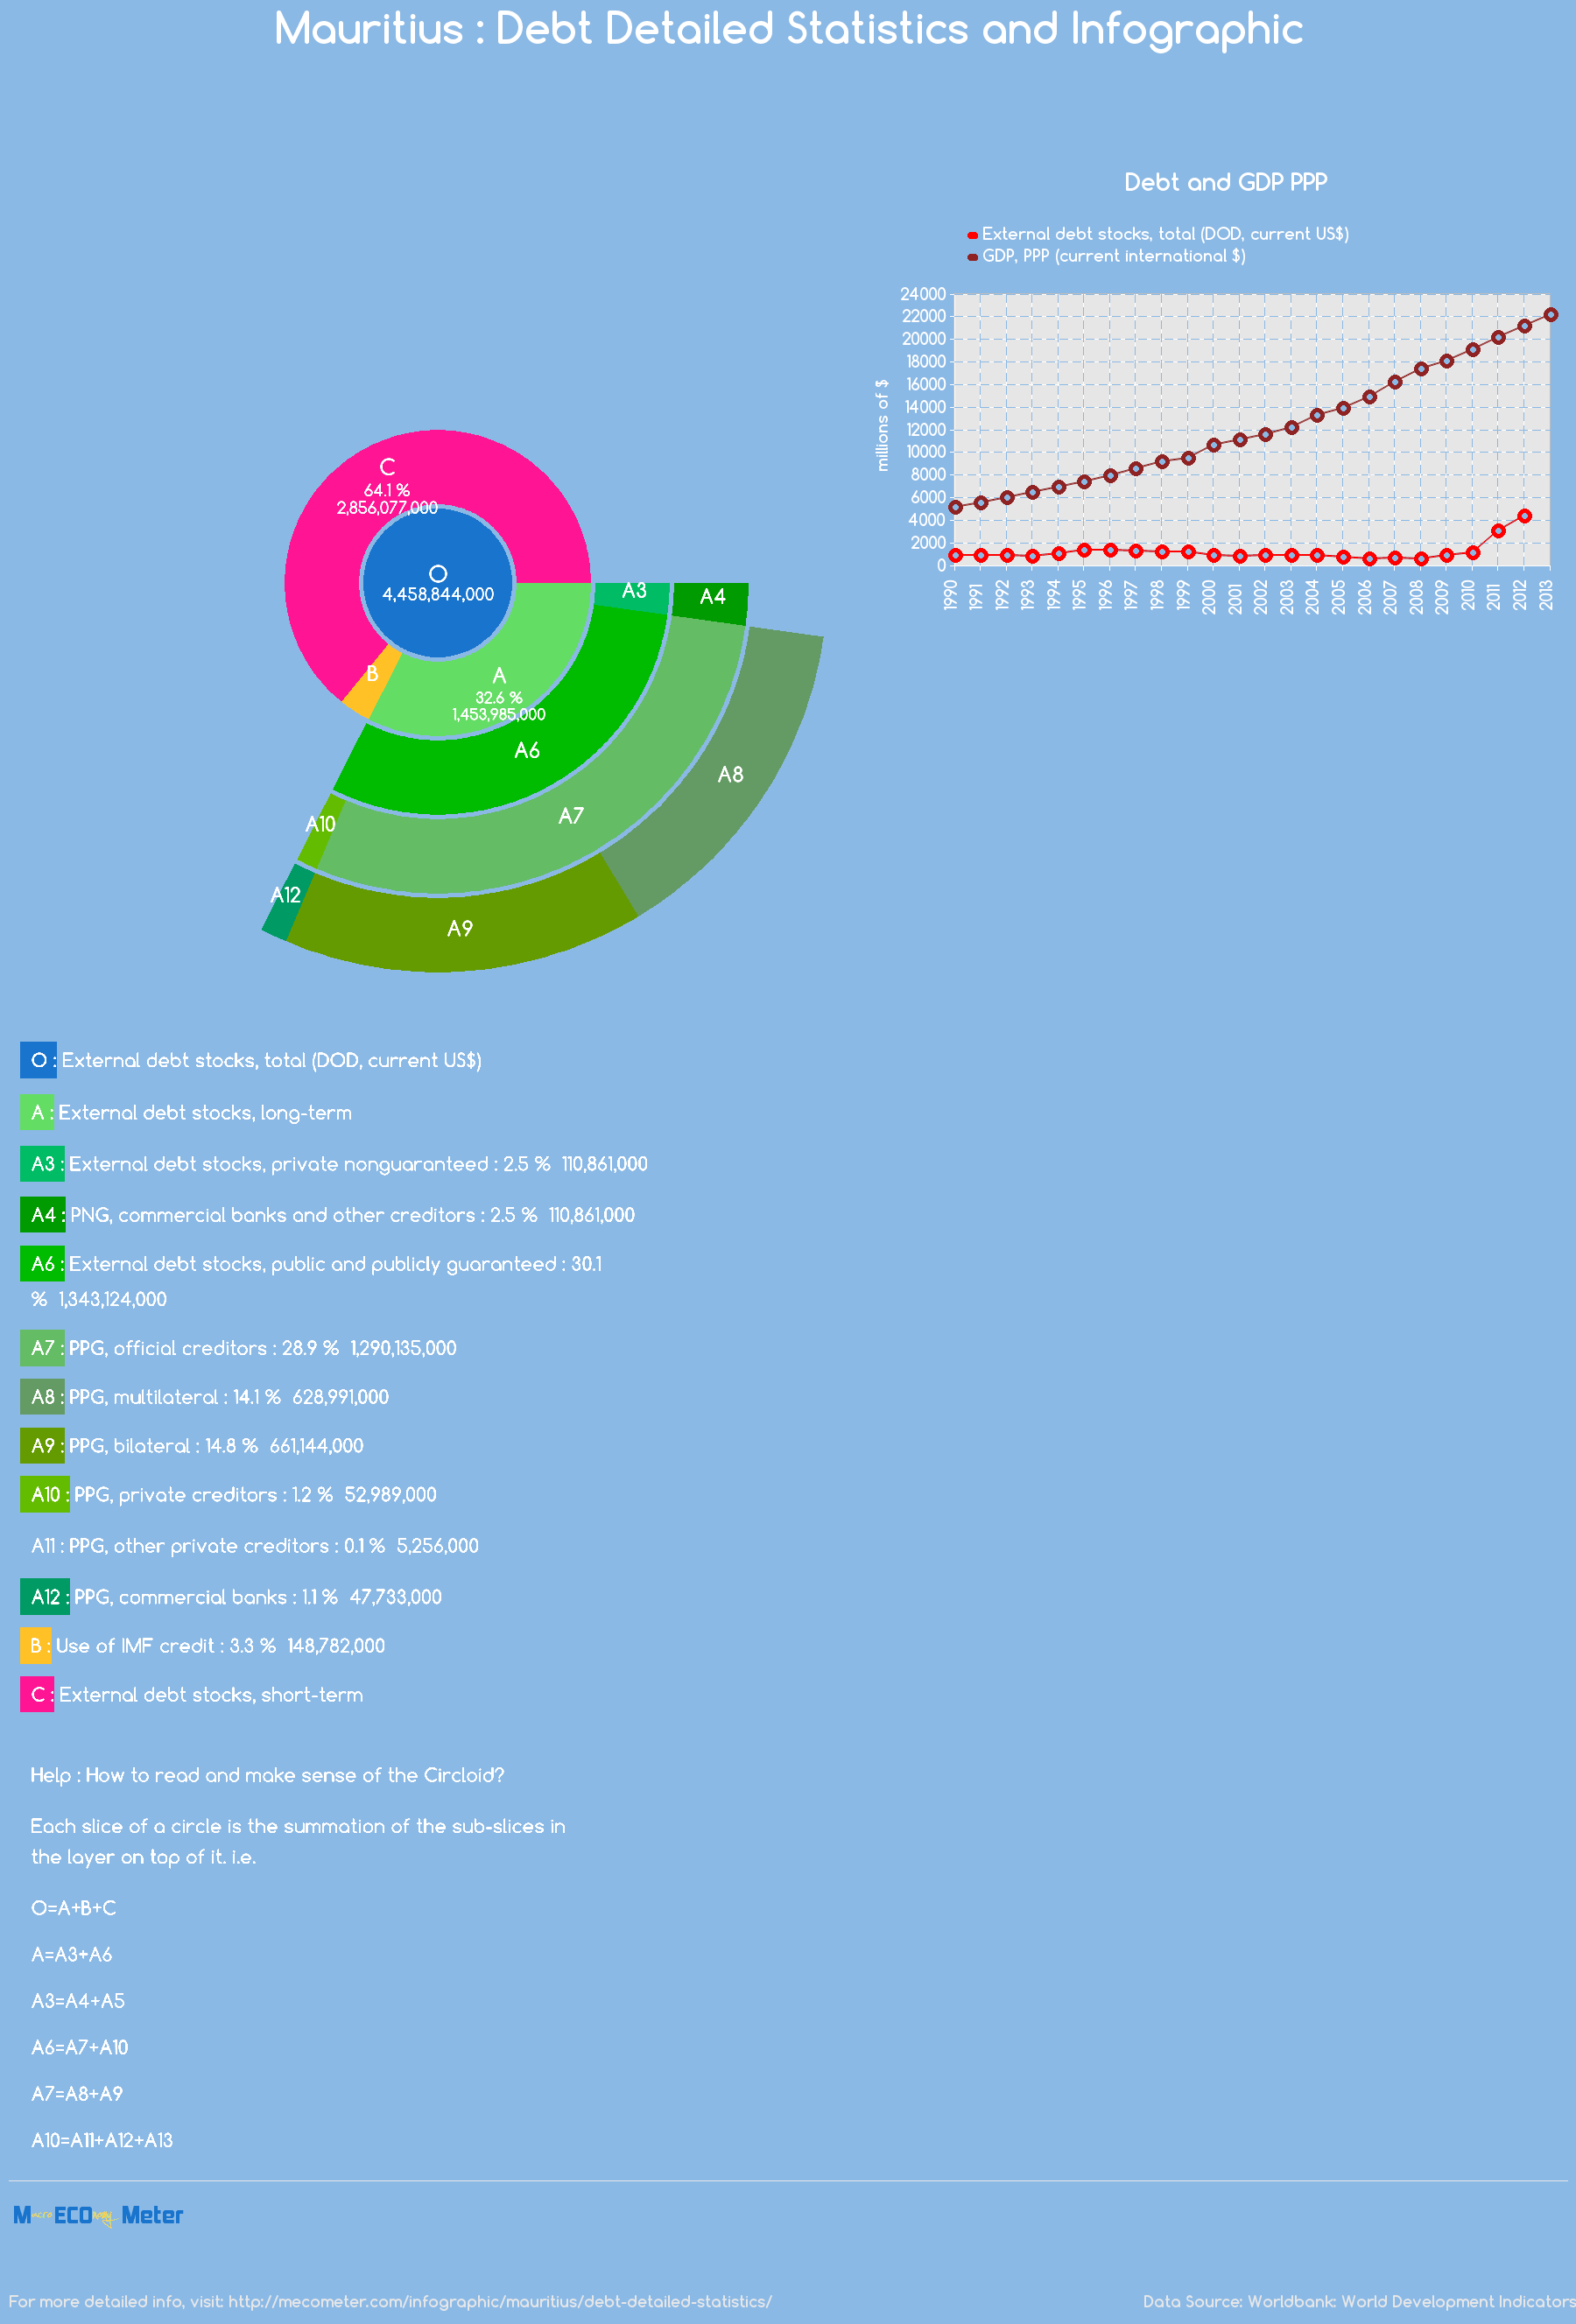 Mauritius : Debt Detailed Statistics and Infographic